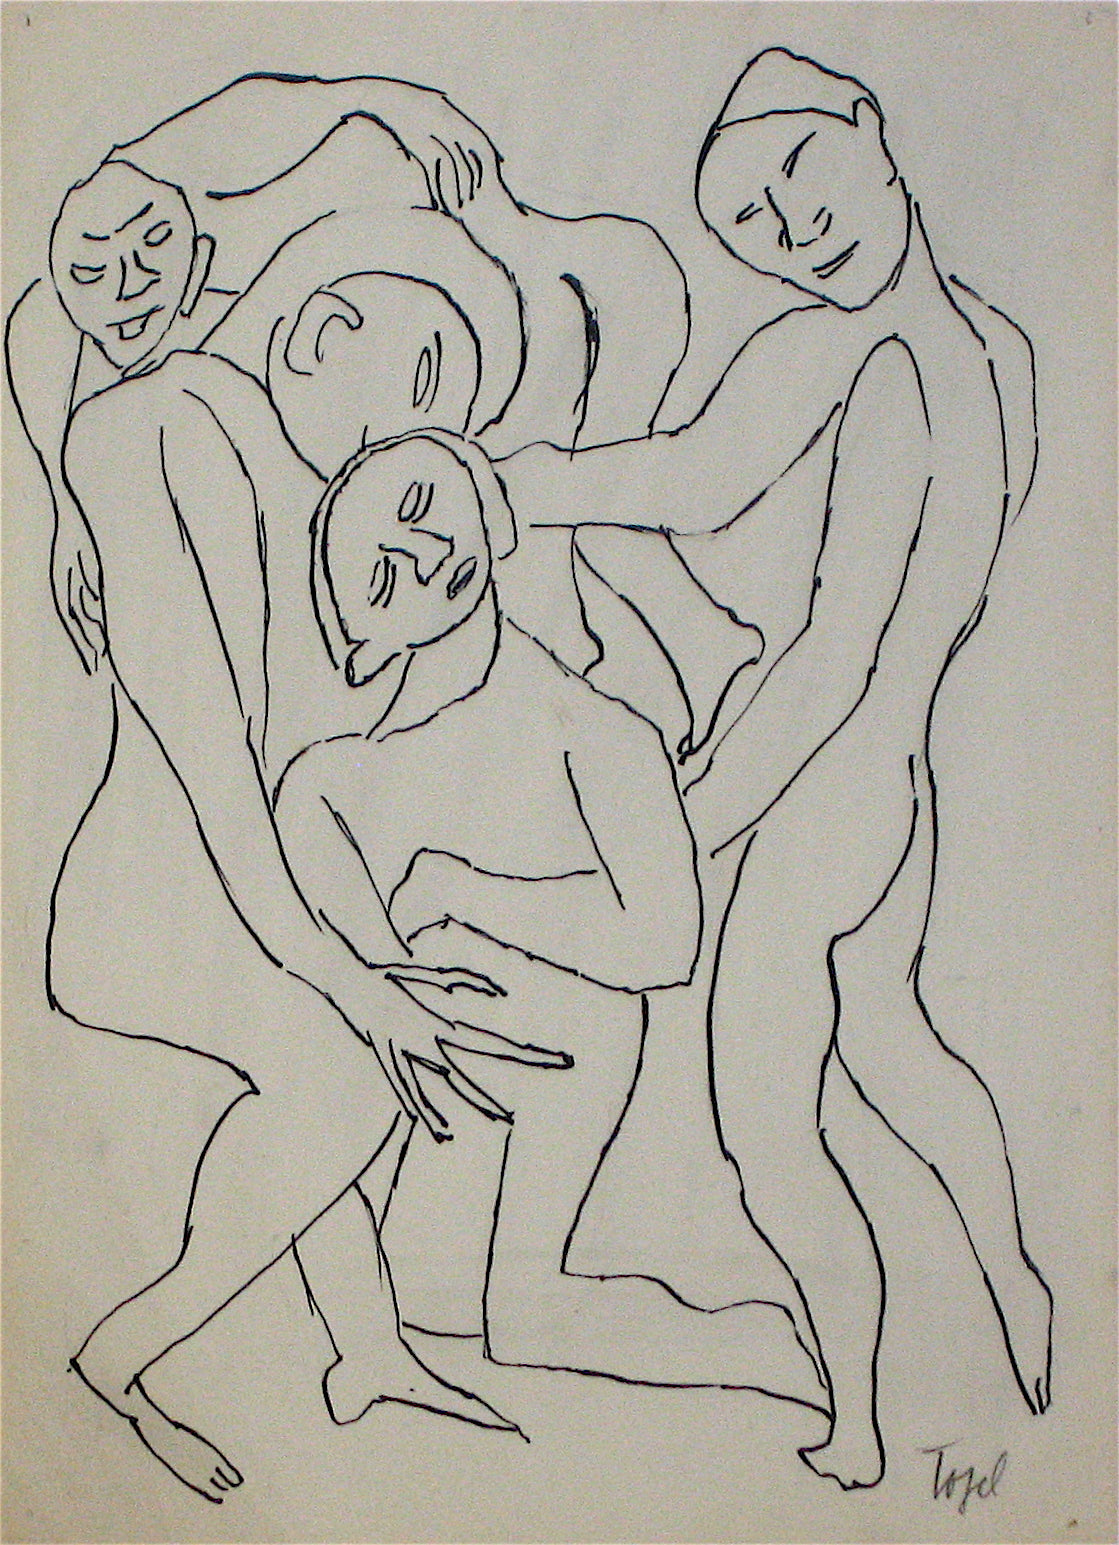 Abstracted Figures in a Scene <br>Early 20th Century Ink on Paper <br><br>#11205